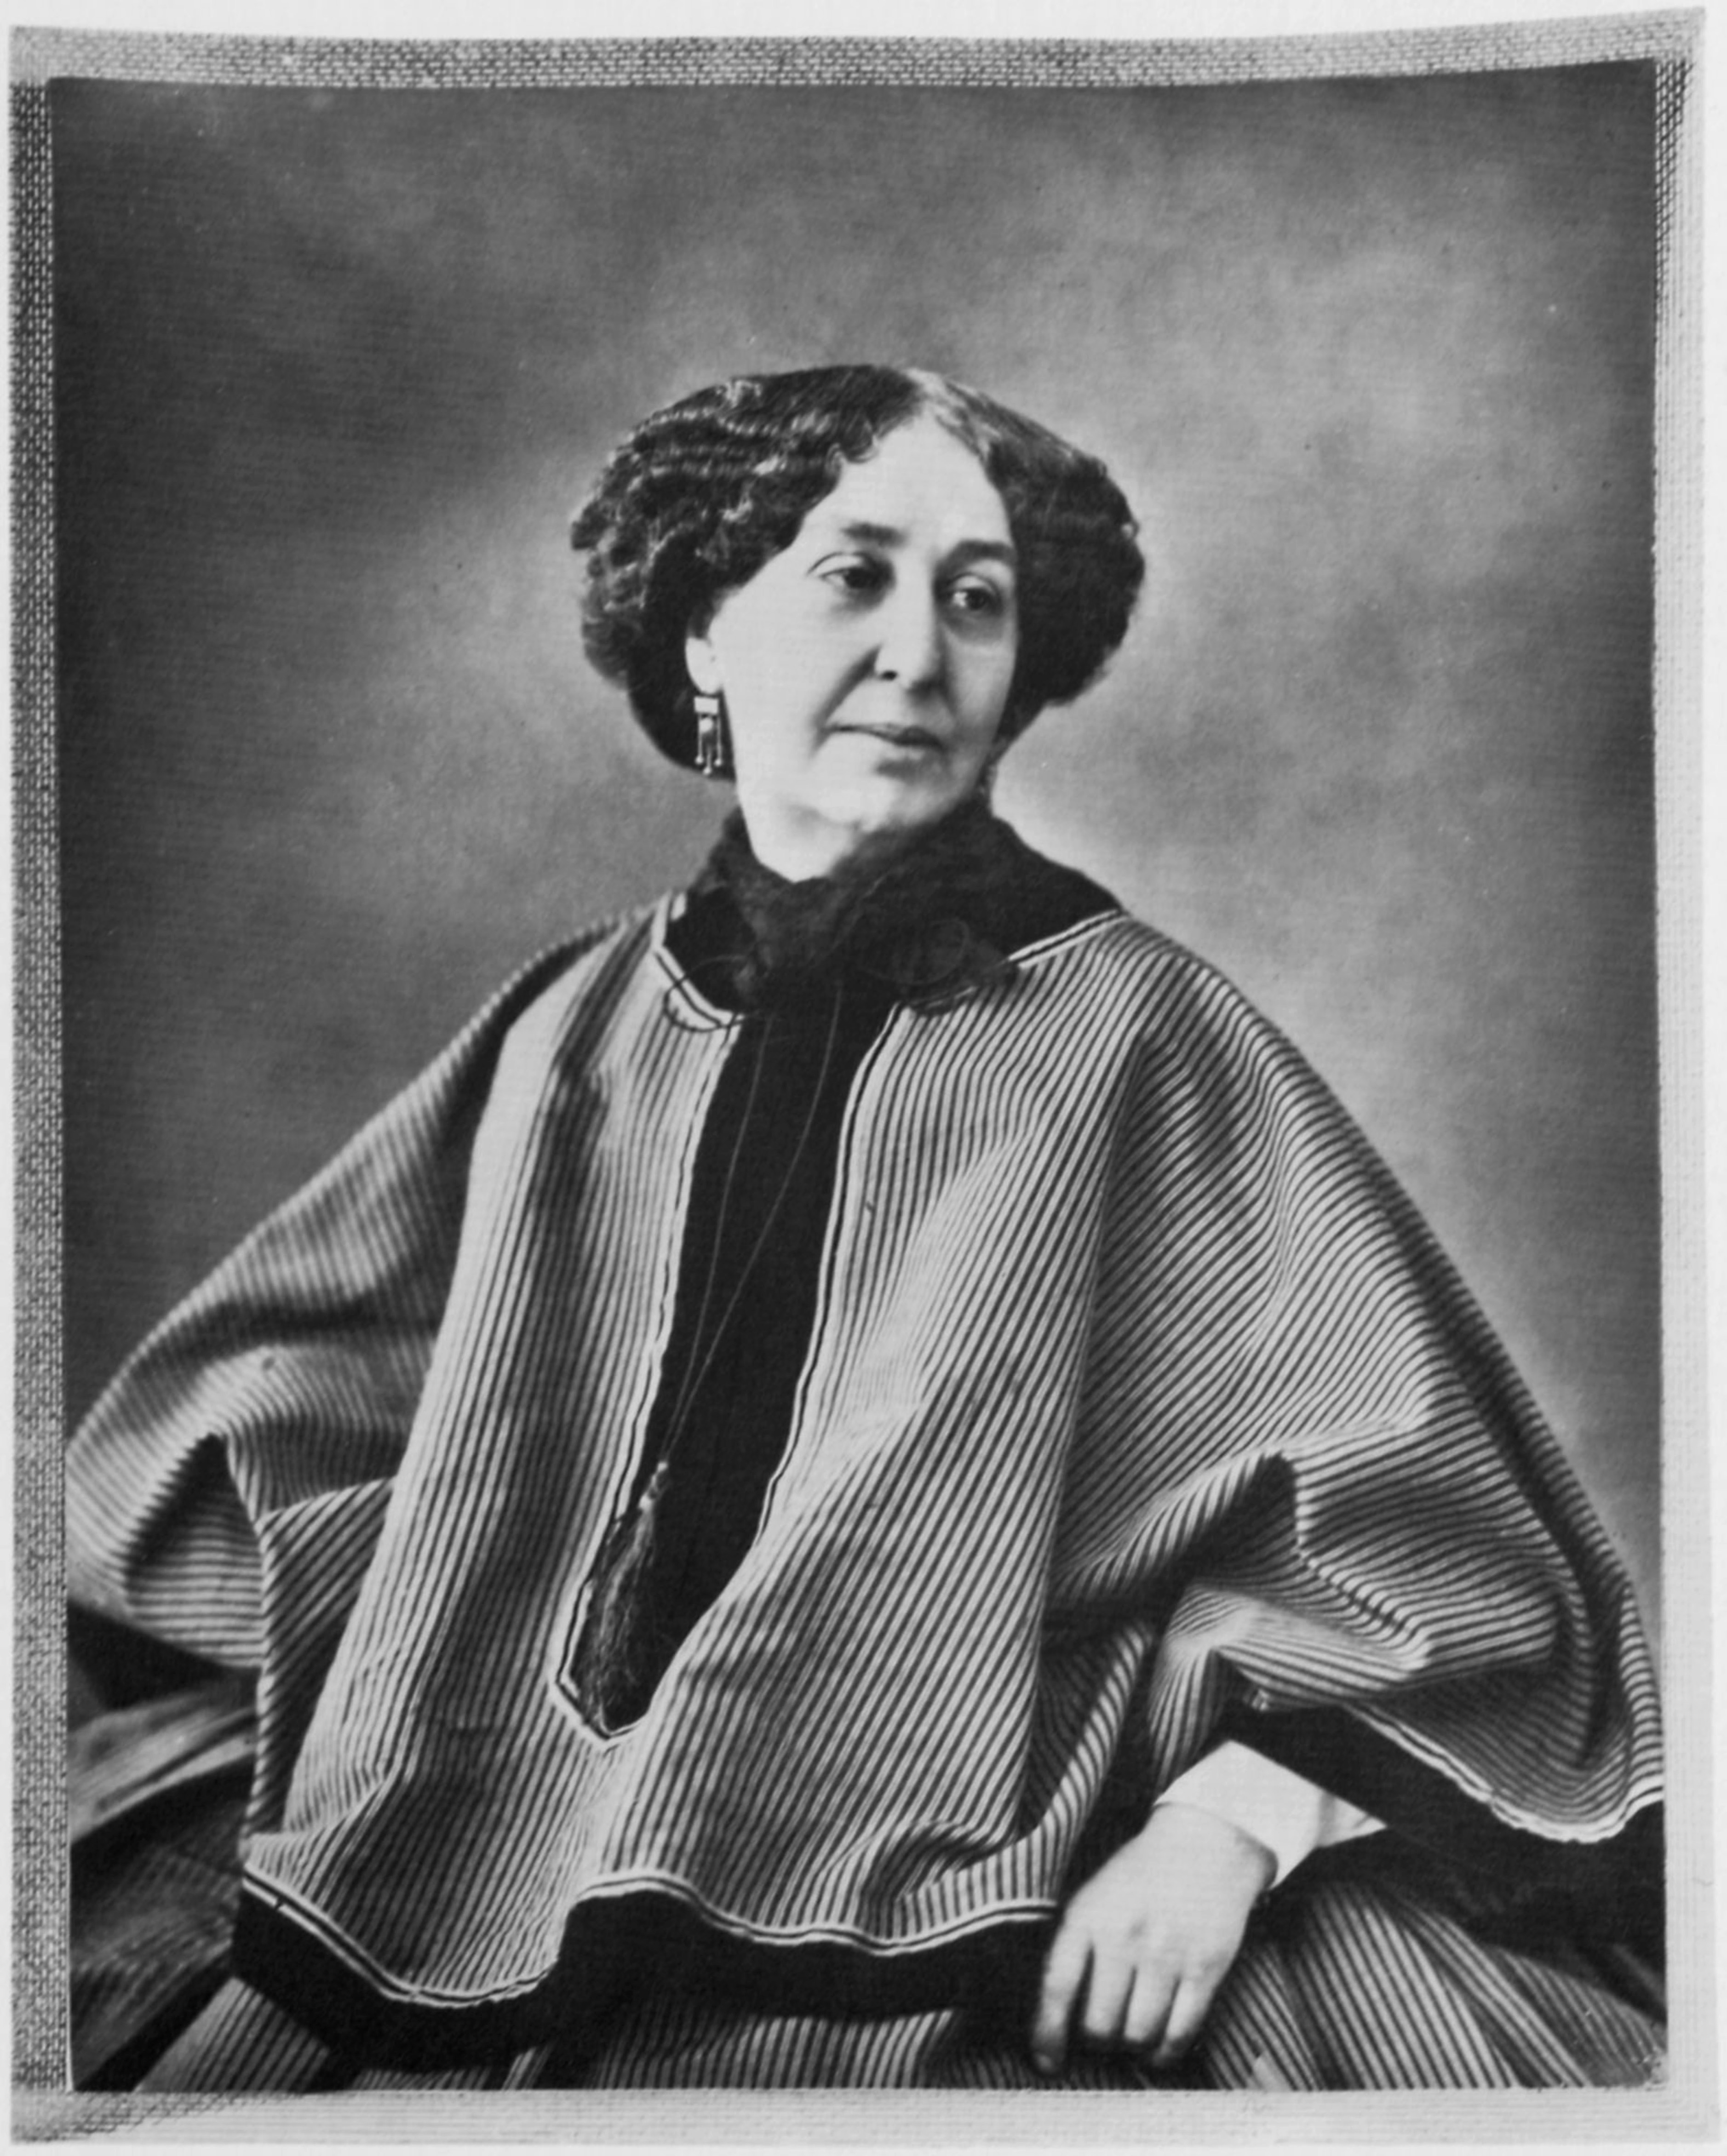 One of Nadar's many portraits of George Sand